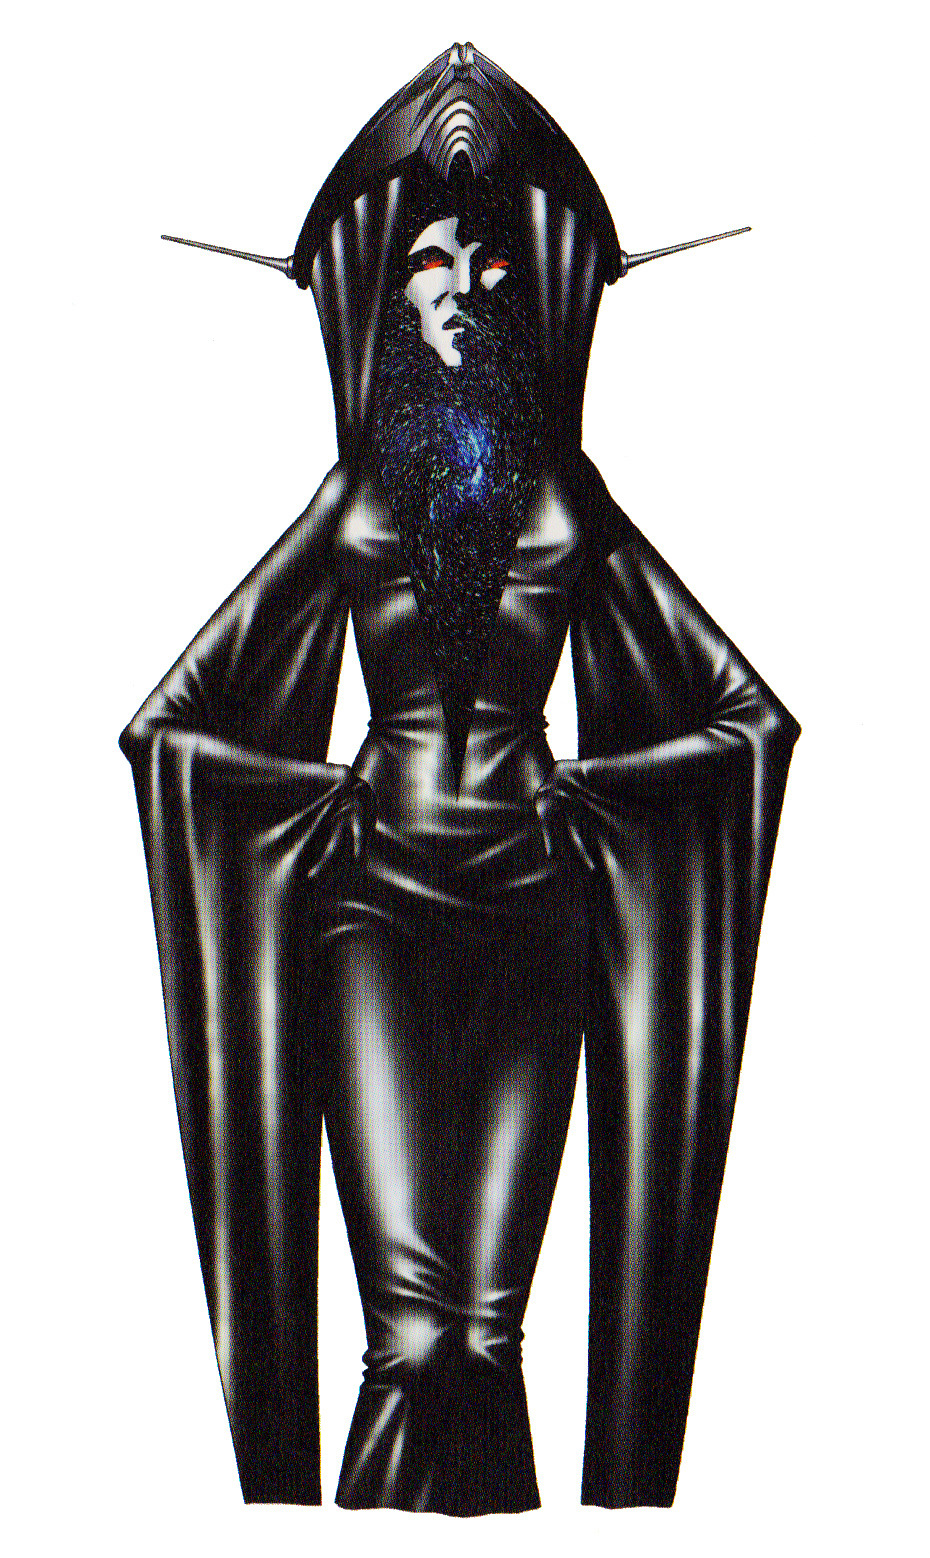 Nyx As Kylie Dupes For 10: Megami Tensei Wiki: A Demonic Compendium Of Your